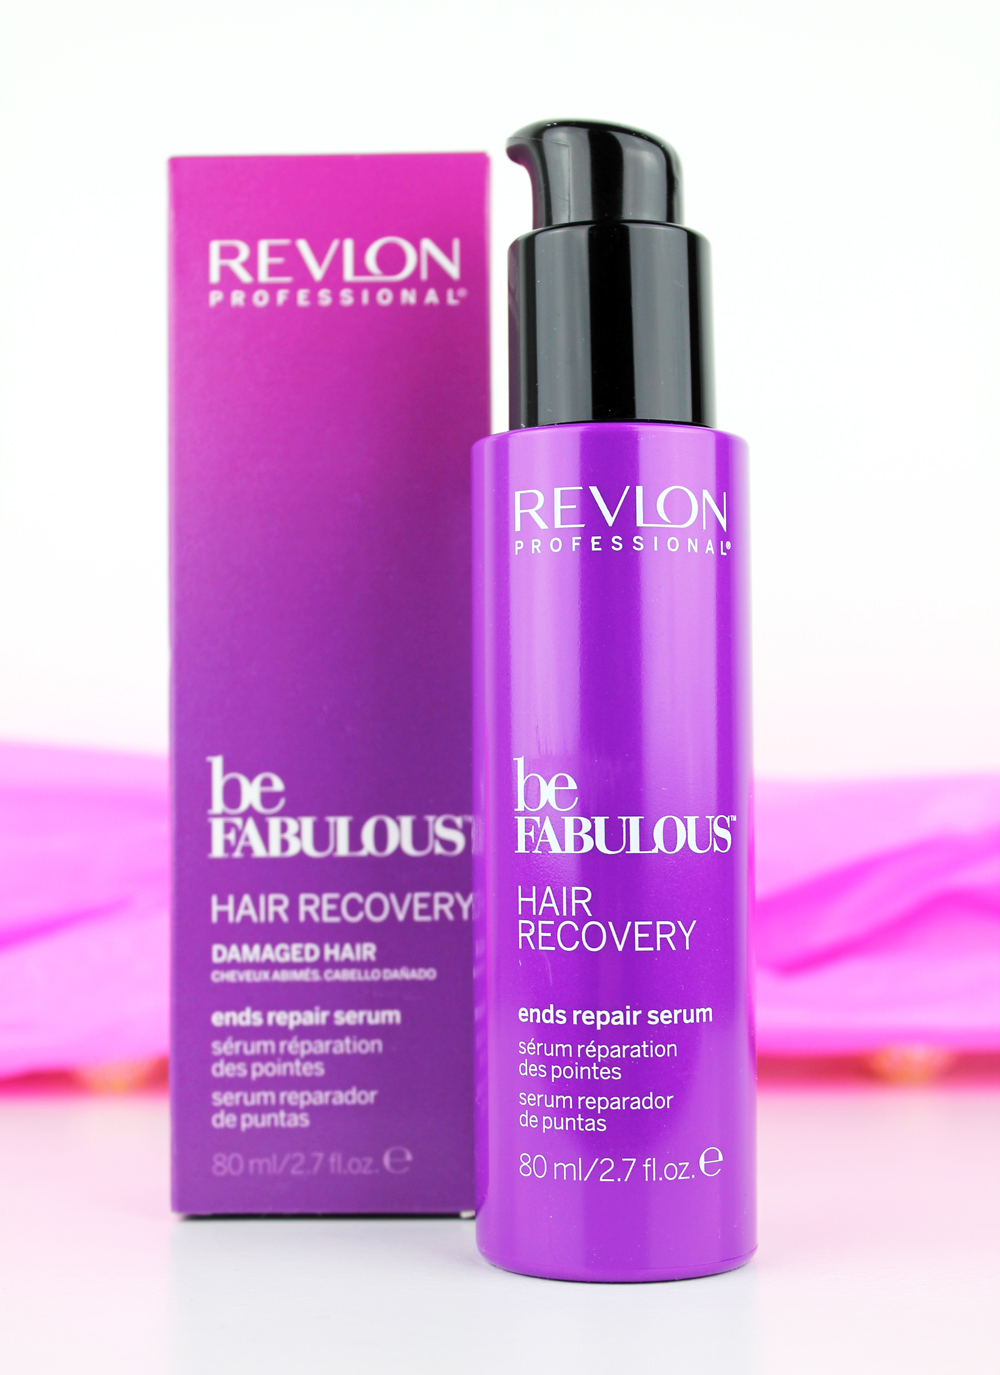 Revlon be fabulous Hair Recovery Ends Repair Serum